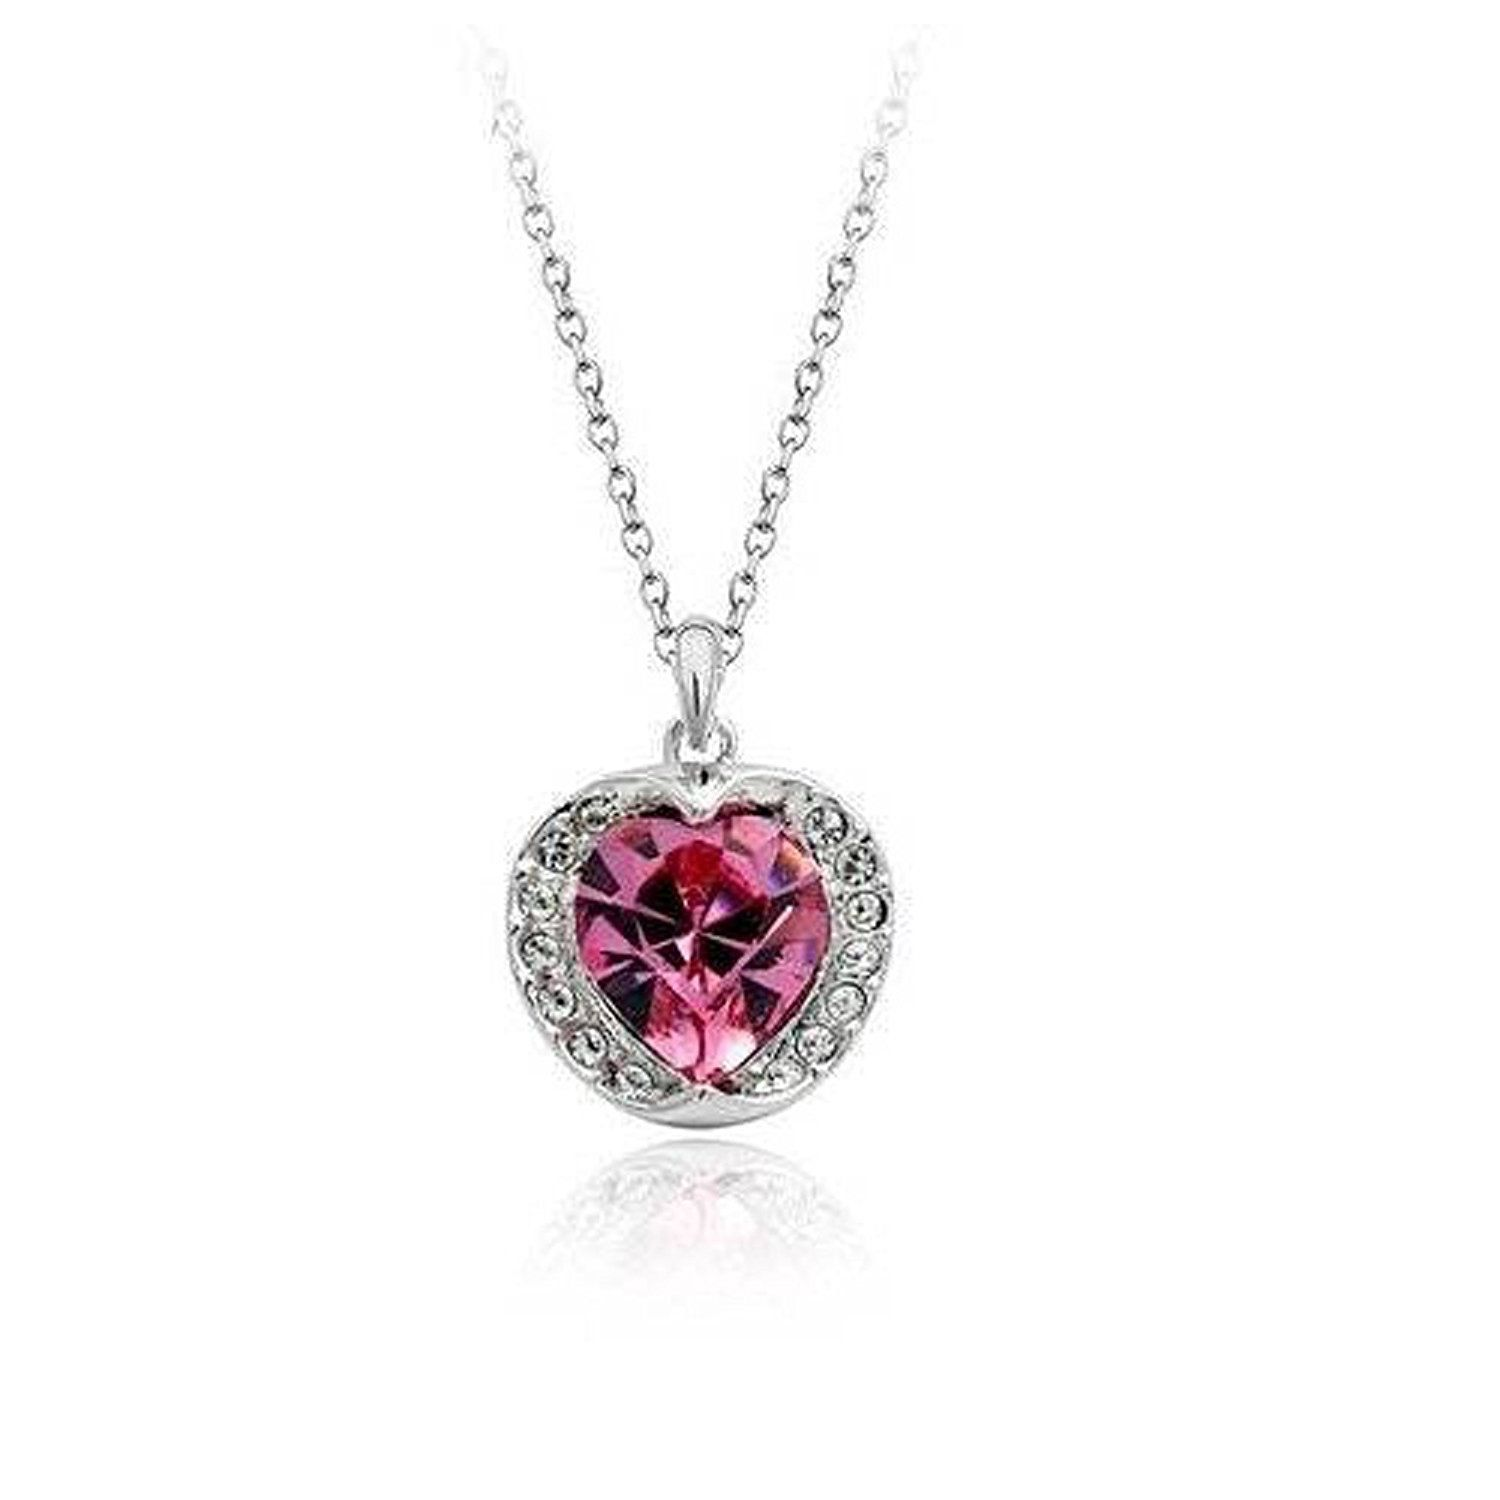 Colorful Crystals from Swarovski Set Pendant Necklace 18